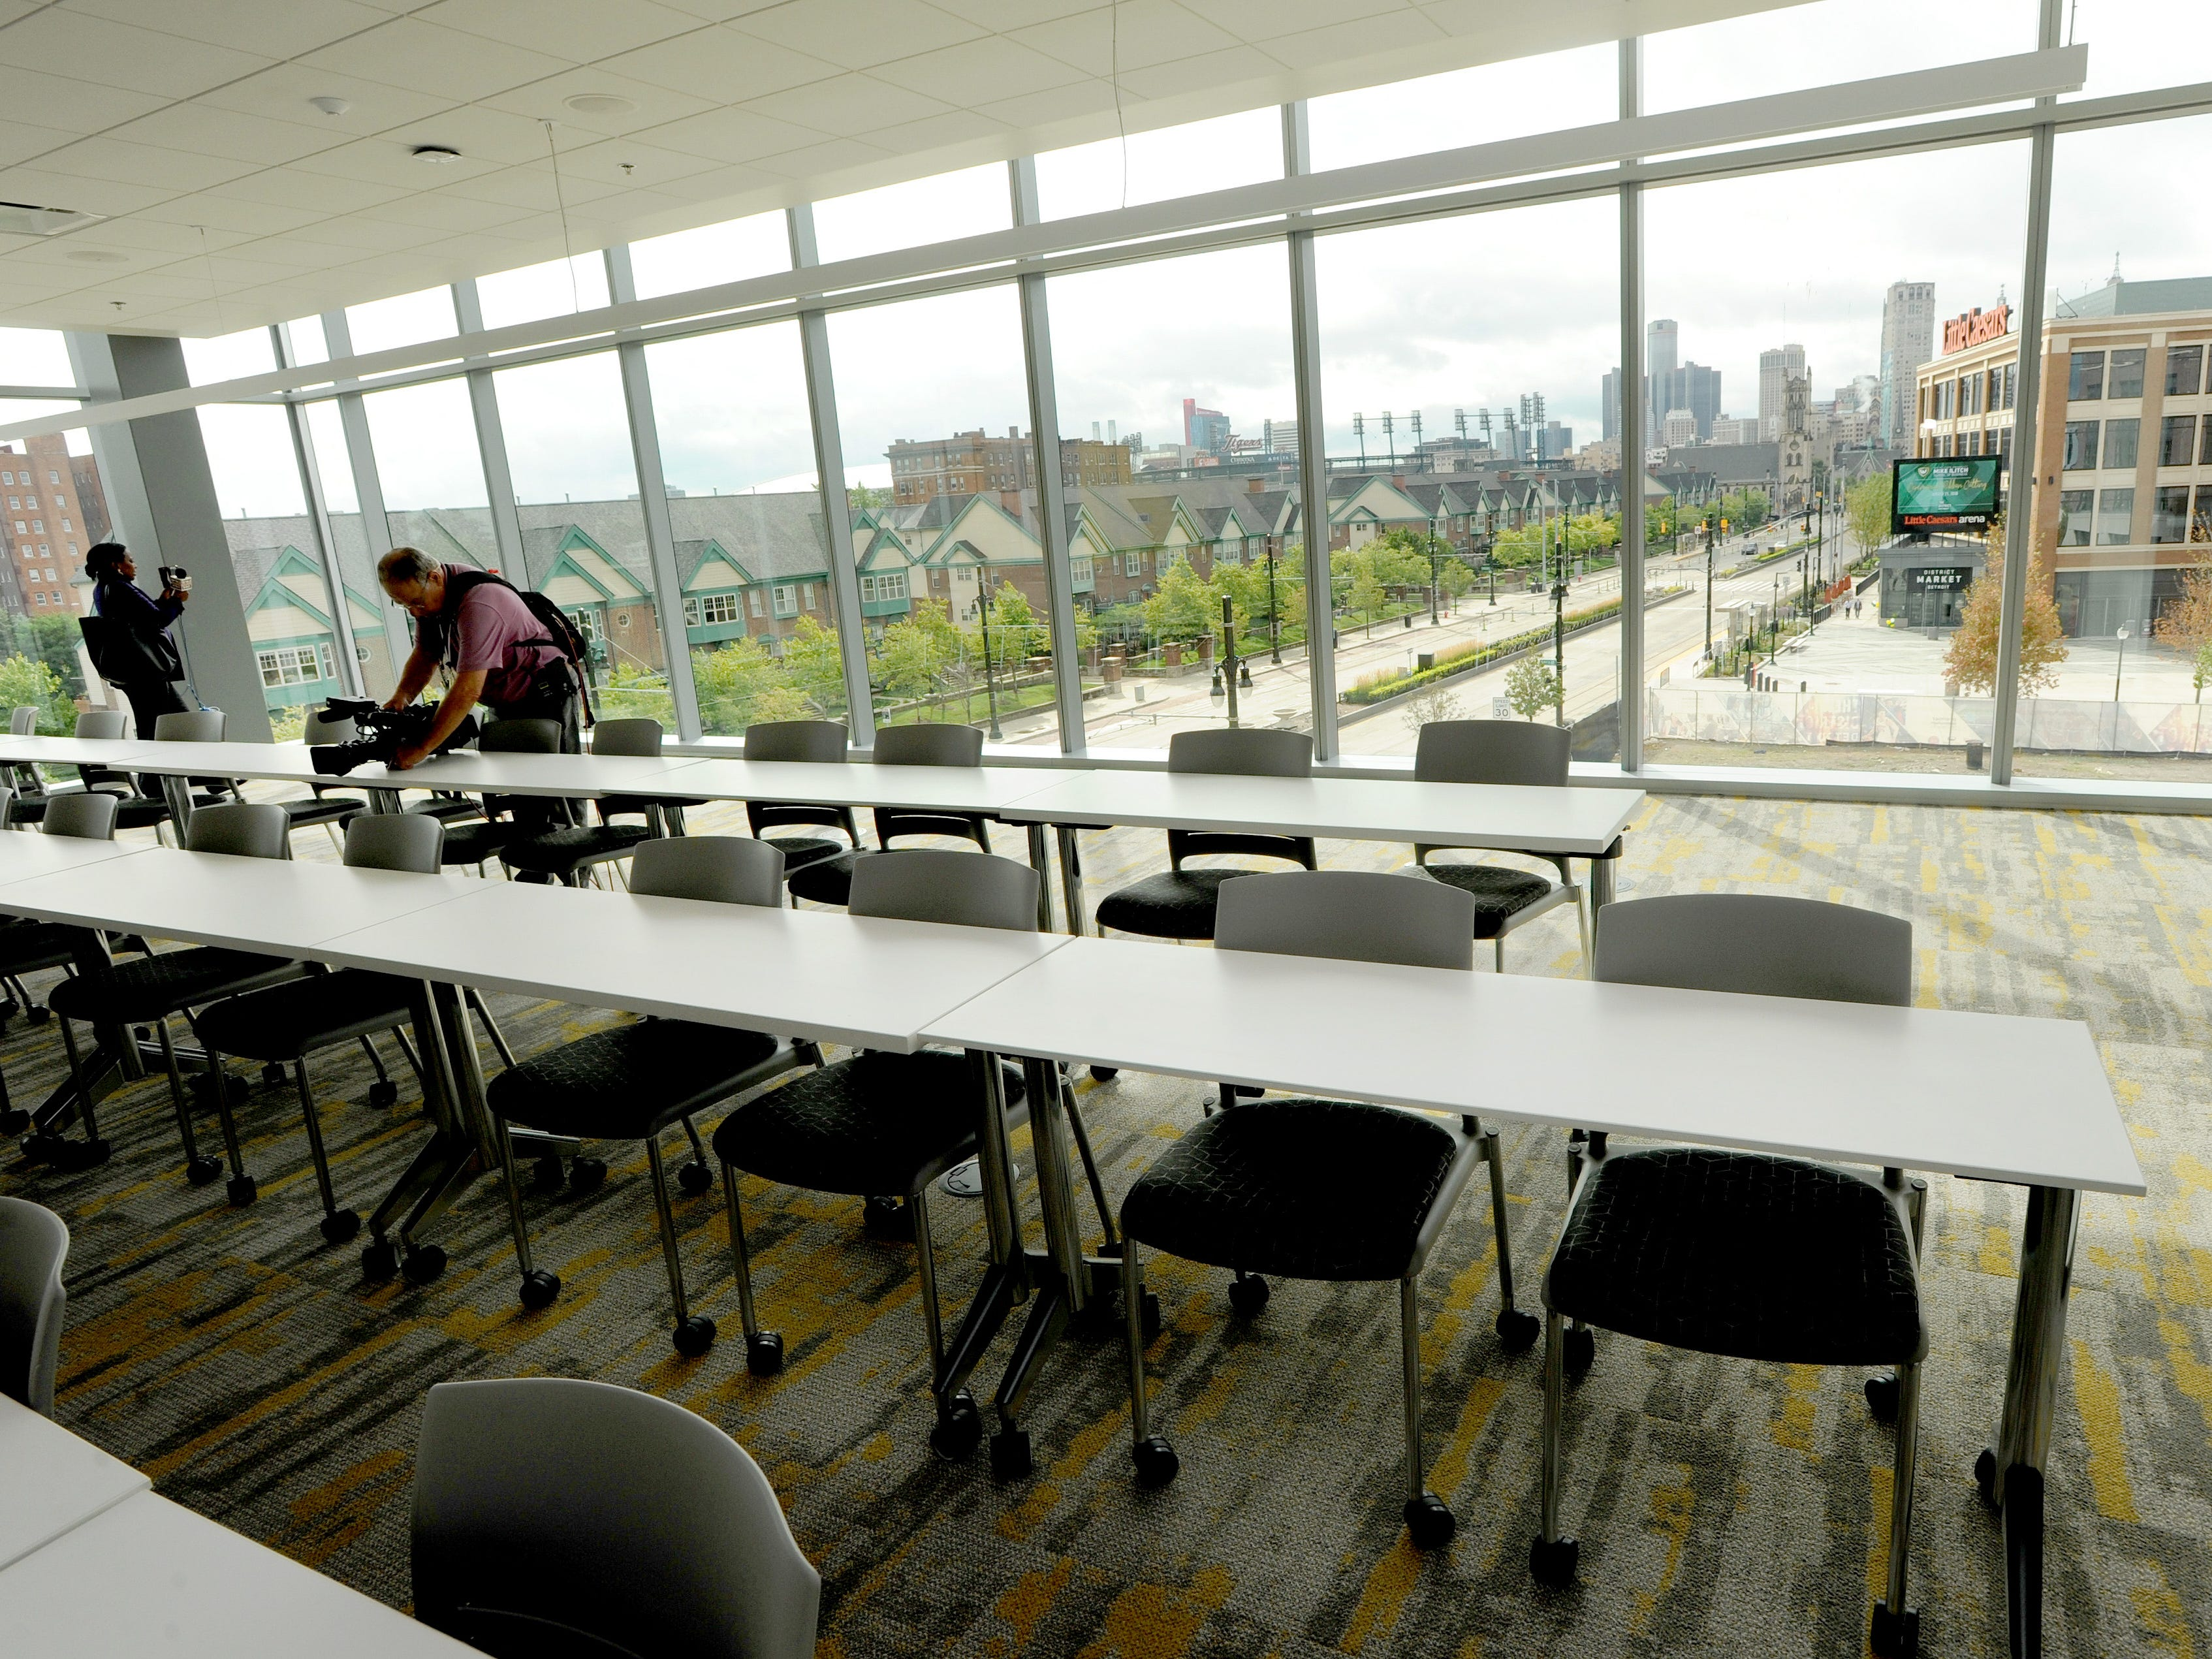 Several classrooms have clear views of downtown Detroit at the Mike Ilitch School of Business at Wayne State University.